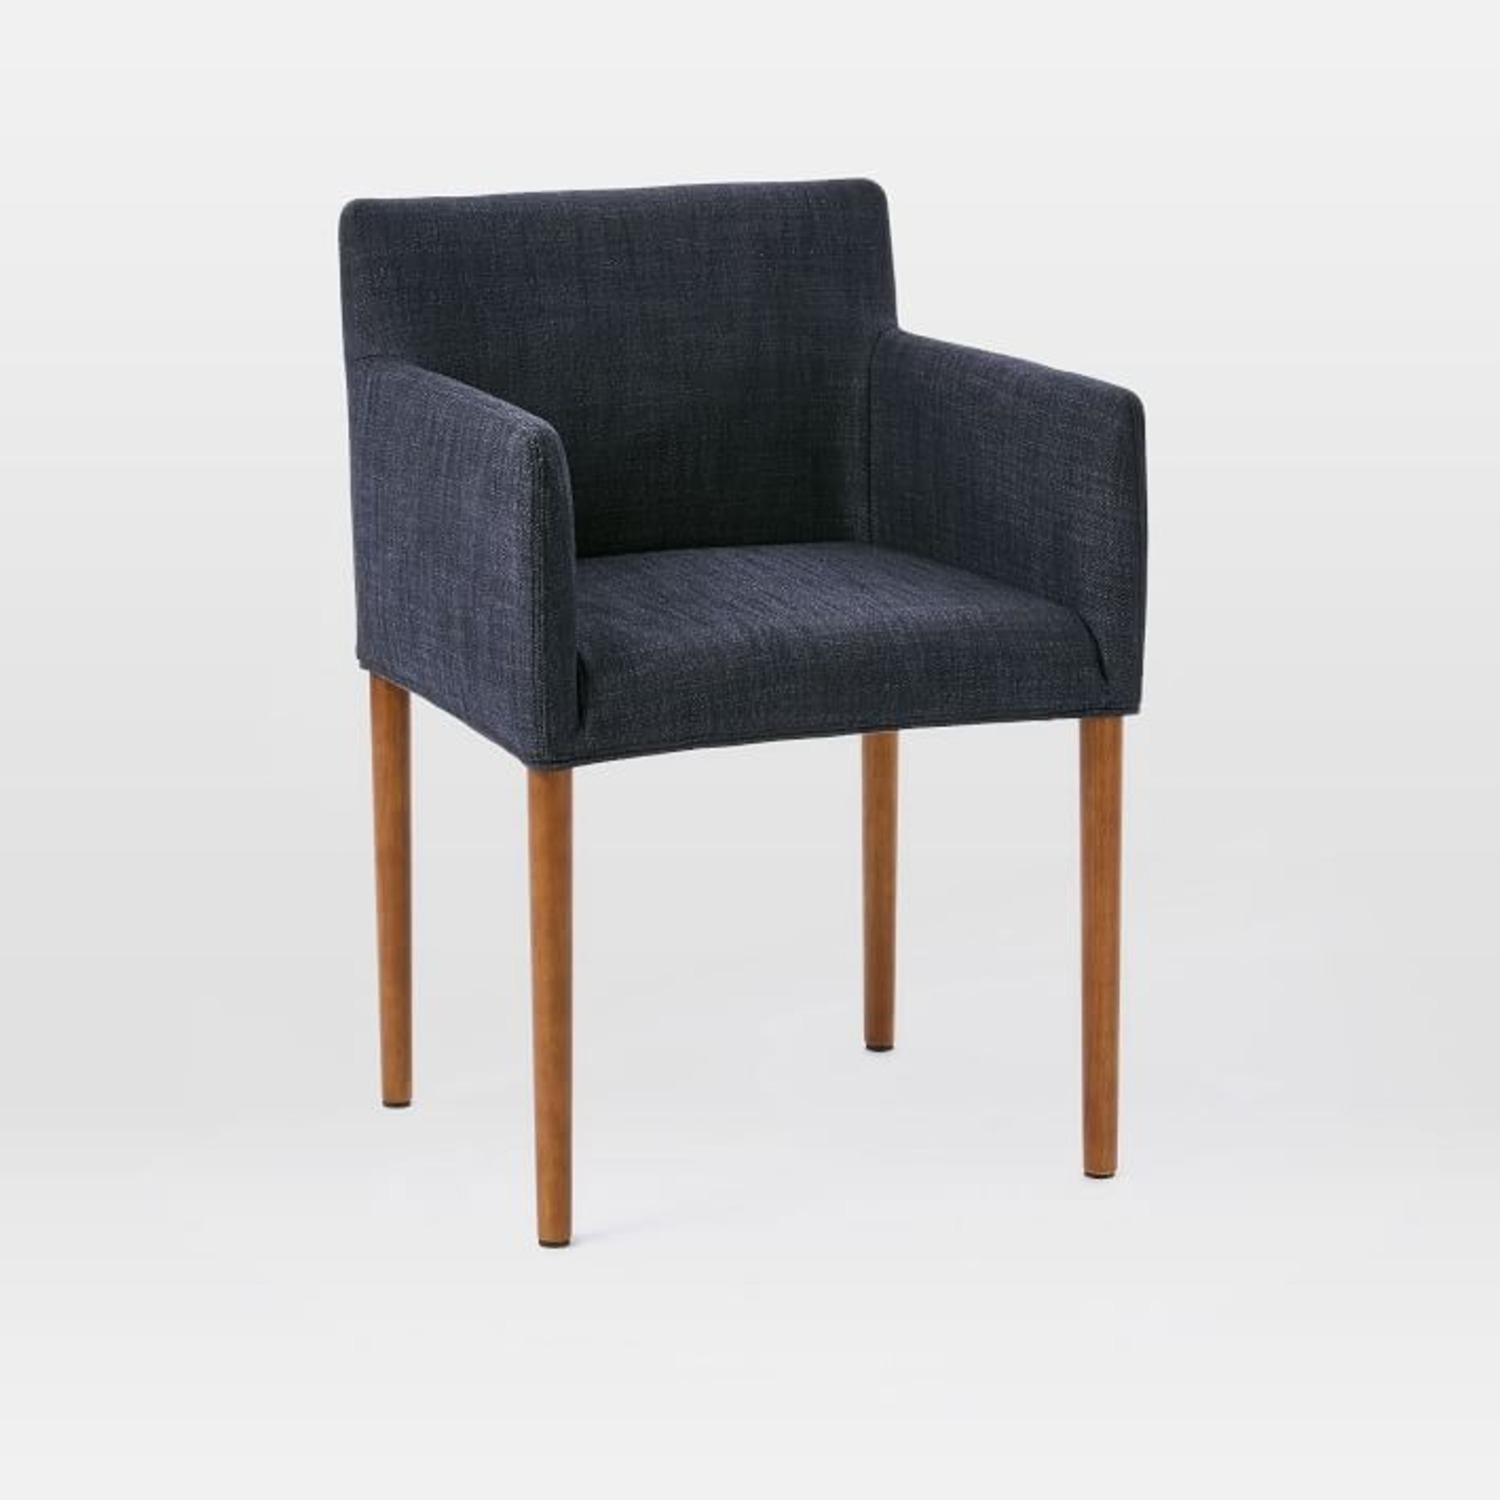 West Elm Ellis Upholstered Arm Chair - image-3